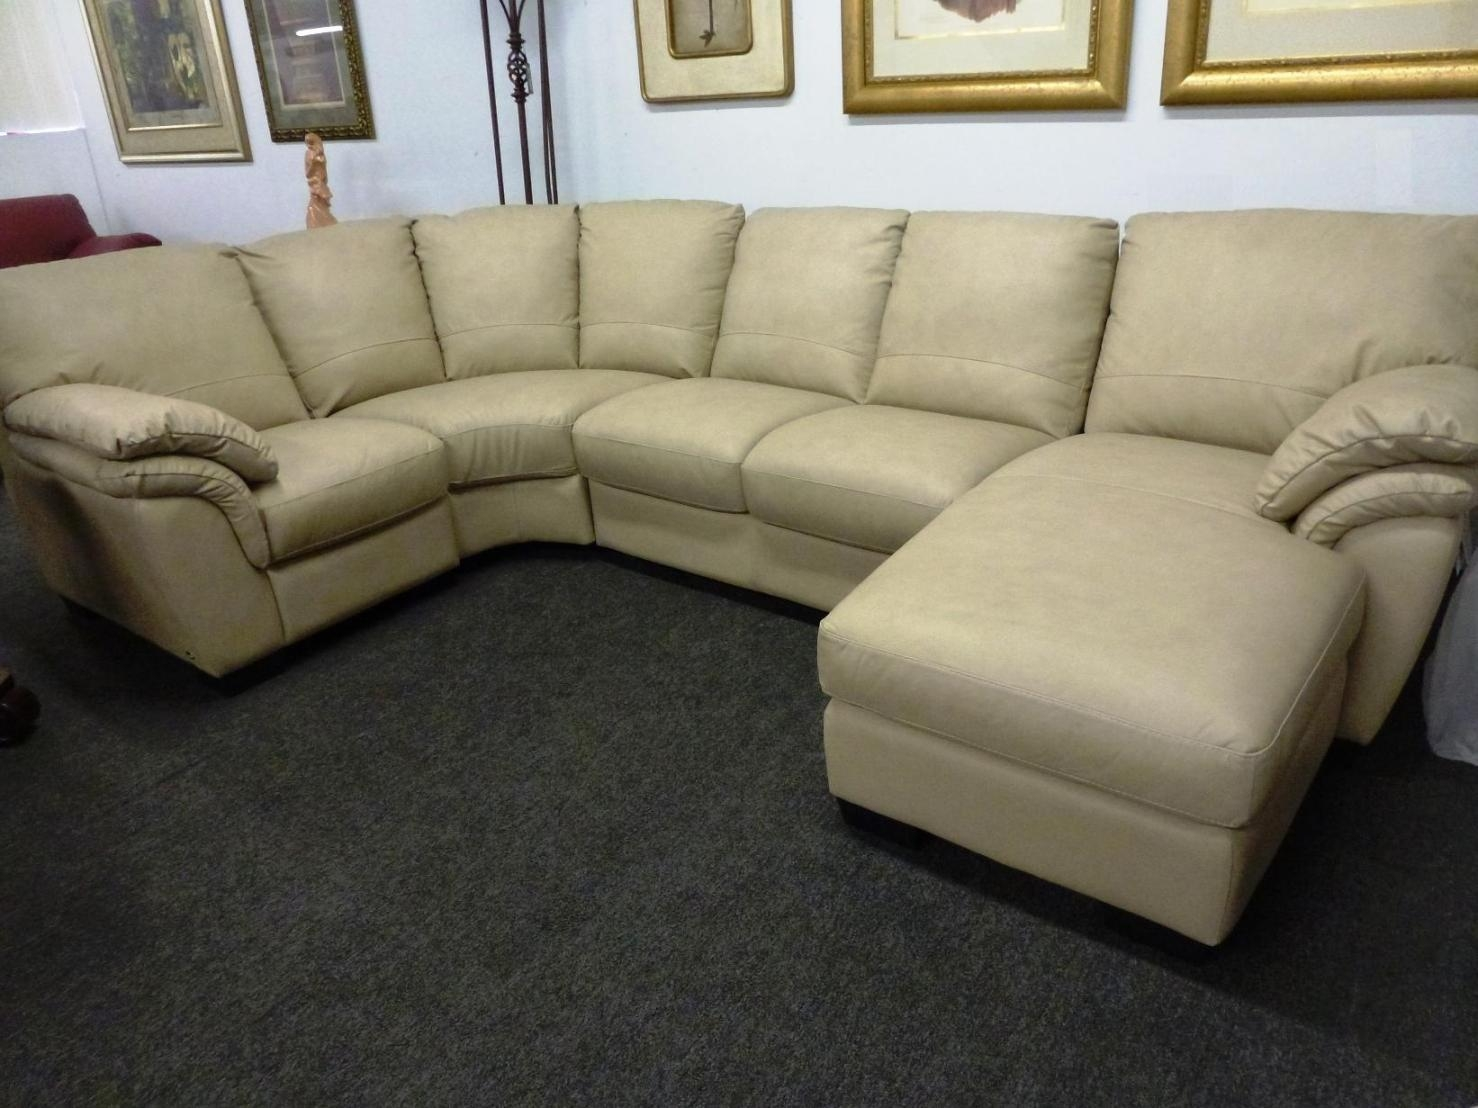 Sofa & Couch: Sectional Couches For Sale To Fit Your Living Room For Leather Sofa Sectionals For Sale (View 7 of 20)